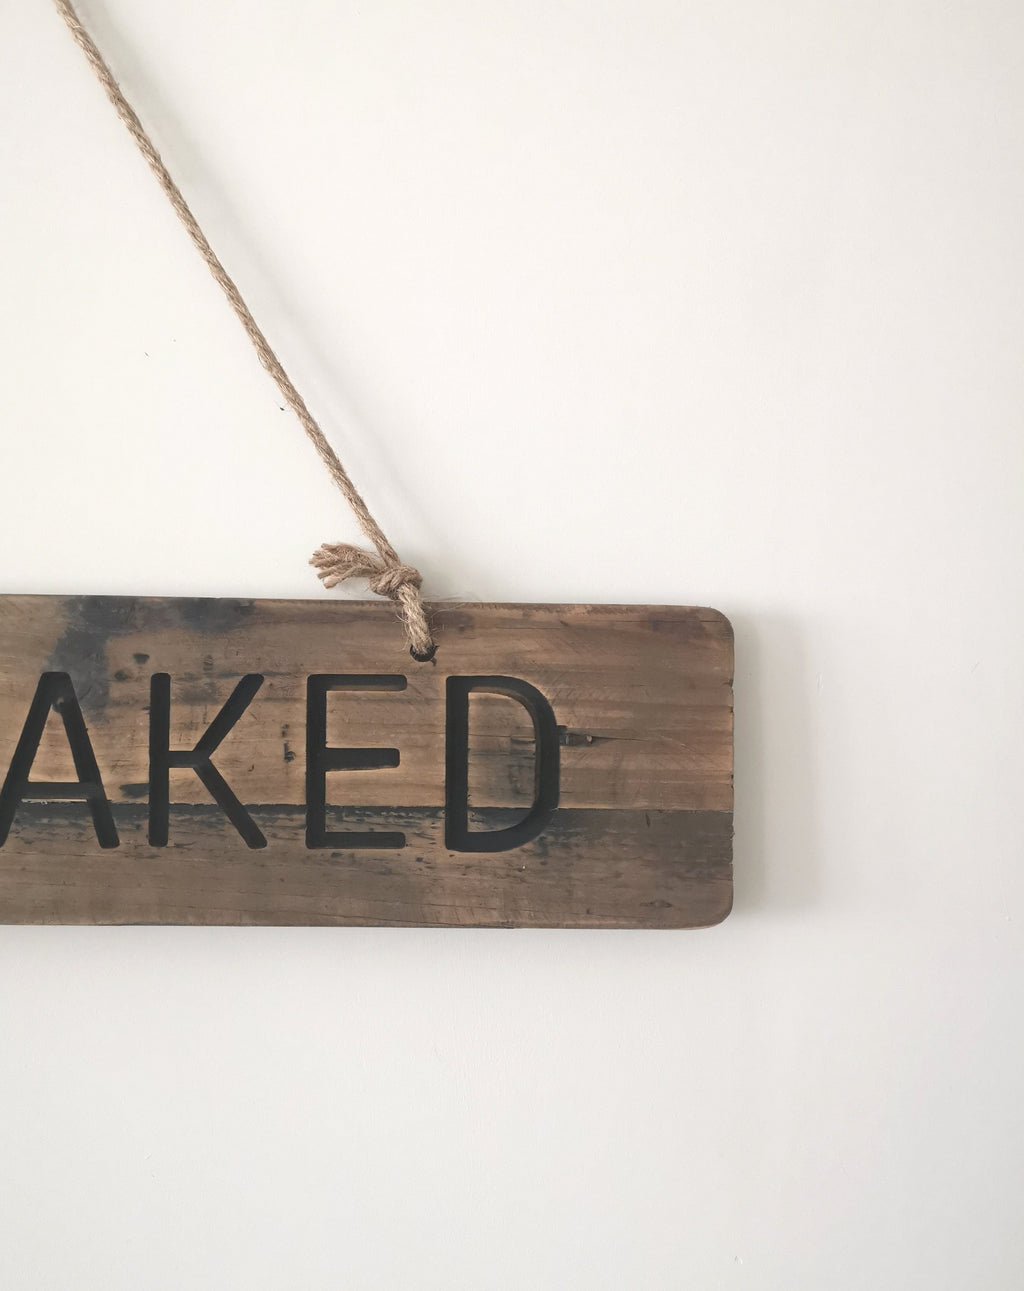 Rustic Get Naked sign with Rope - The Burrow Interiors